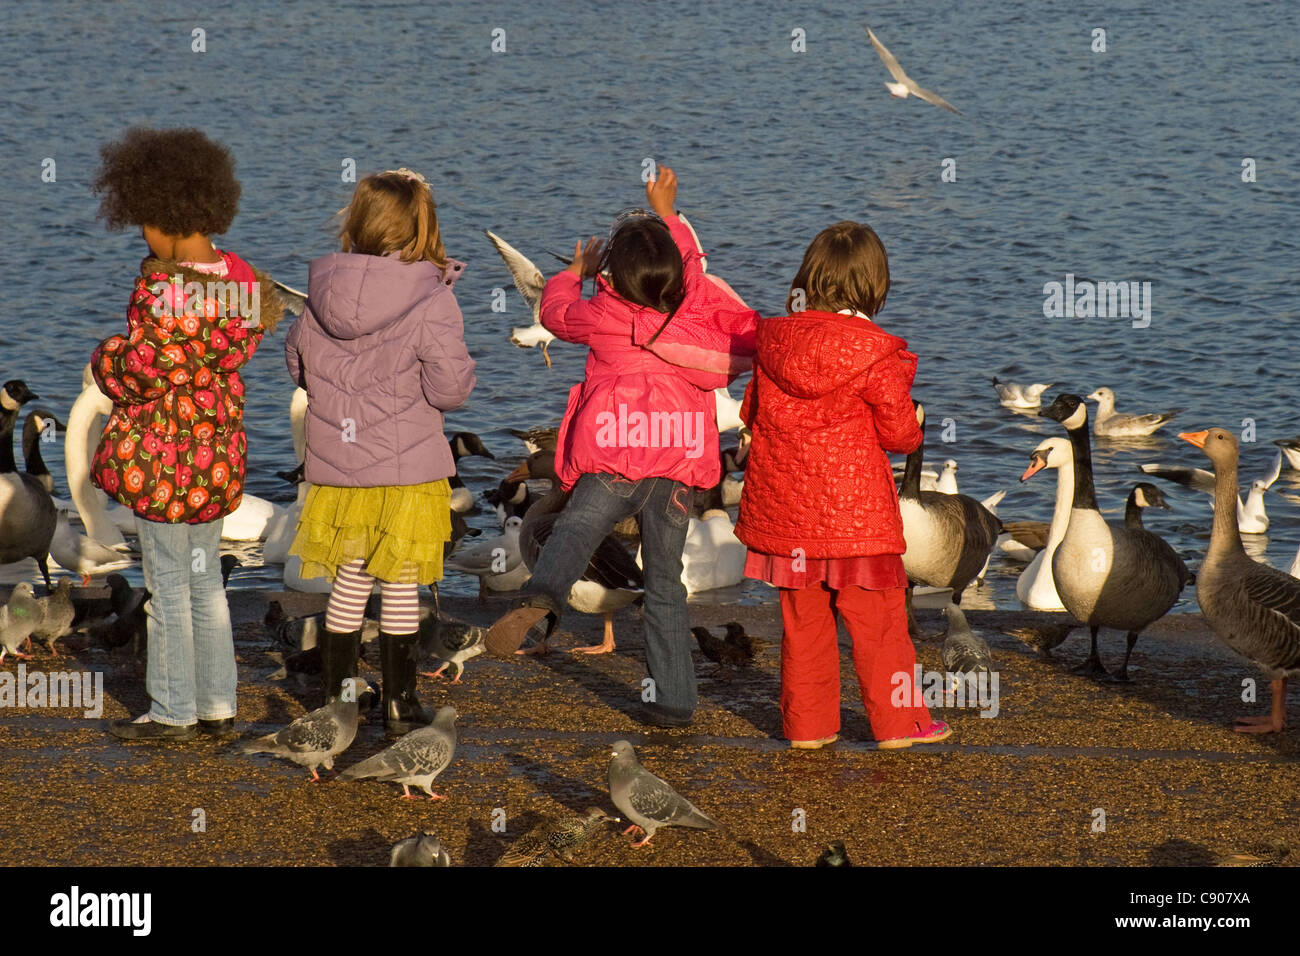 Seductive Multicultural Children Uk Stock Photos  Multicultural Children Uk  With Foxy Young Girls Feeding Birds Round Pond Kensington Gardens Hyde Park  London  With Appealing Zeppole Olive Garden Also Garden Fence Rules In Addition Ribbon Embroidery Flower Garden And Small Garden Design As Well As Activity Garden Play Centre Additionally Globe Garden Lights From Alamycom With   Foxy Multicultural Children Uk Stock Photos  Multicultural Children Uk  With Appealing Young Girls Feeding Birds Round Pond Kensington Gardens Hyde Park  London  And Seductive Zeppole Olive Garden Also Garden Fence Rules In Addition Ribbon Embroidery Flower Garden From Alamycom